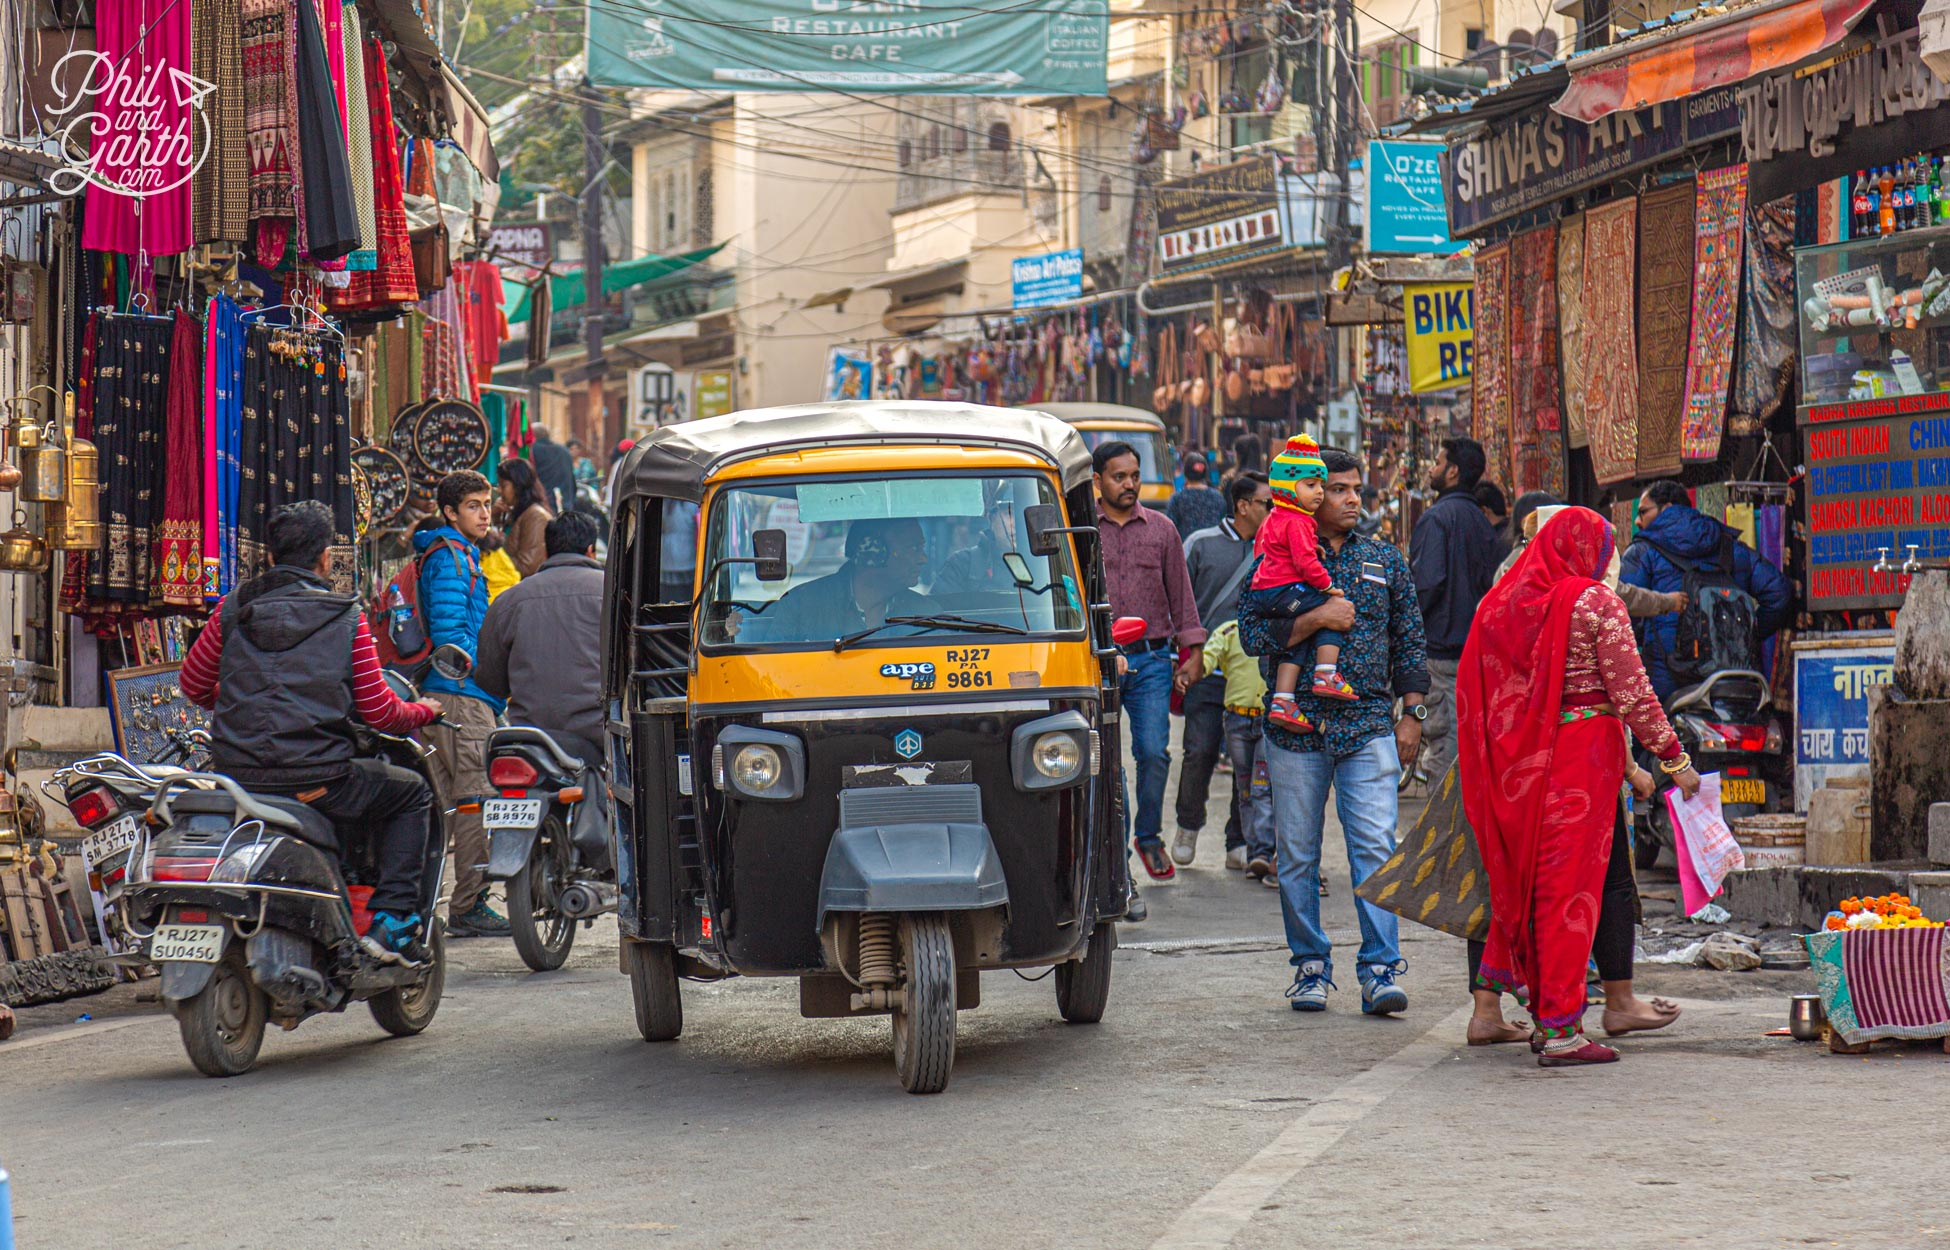 Tuk tuks vary in size by cities in India. In Udaipur they are bigger and can seat 3 people